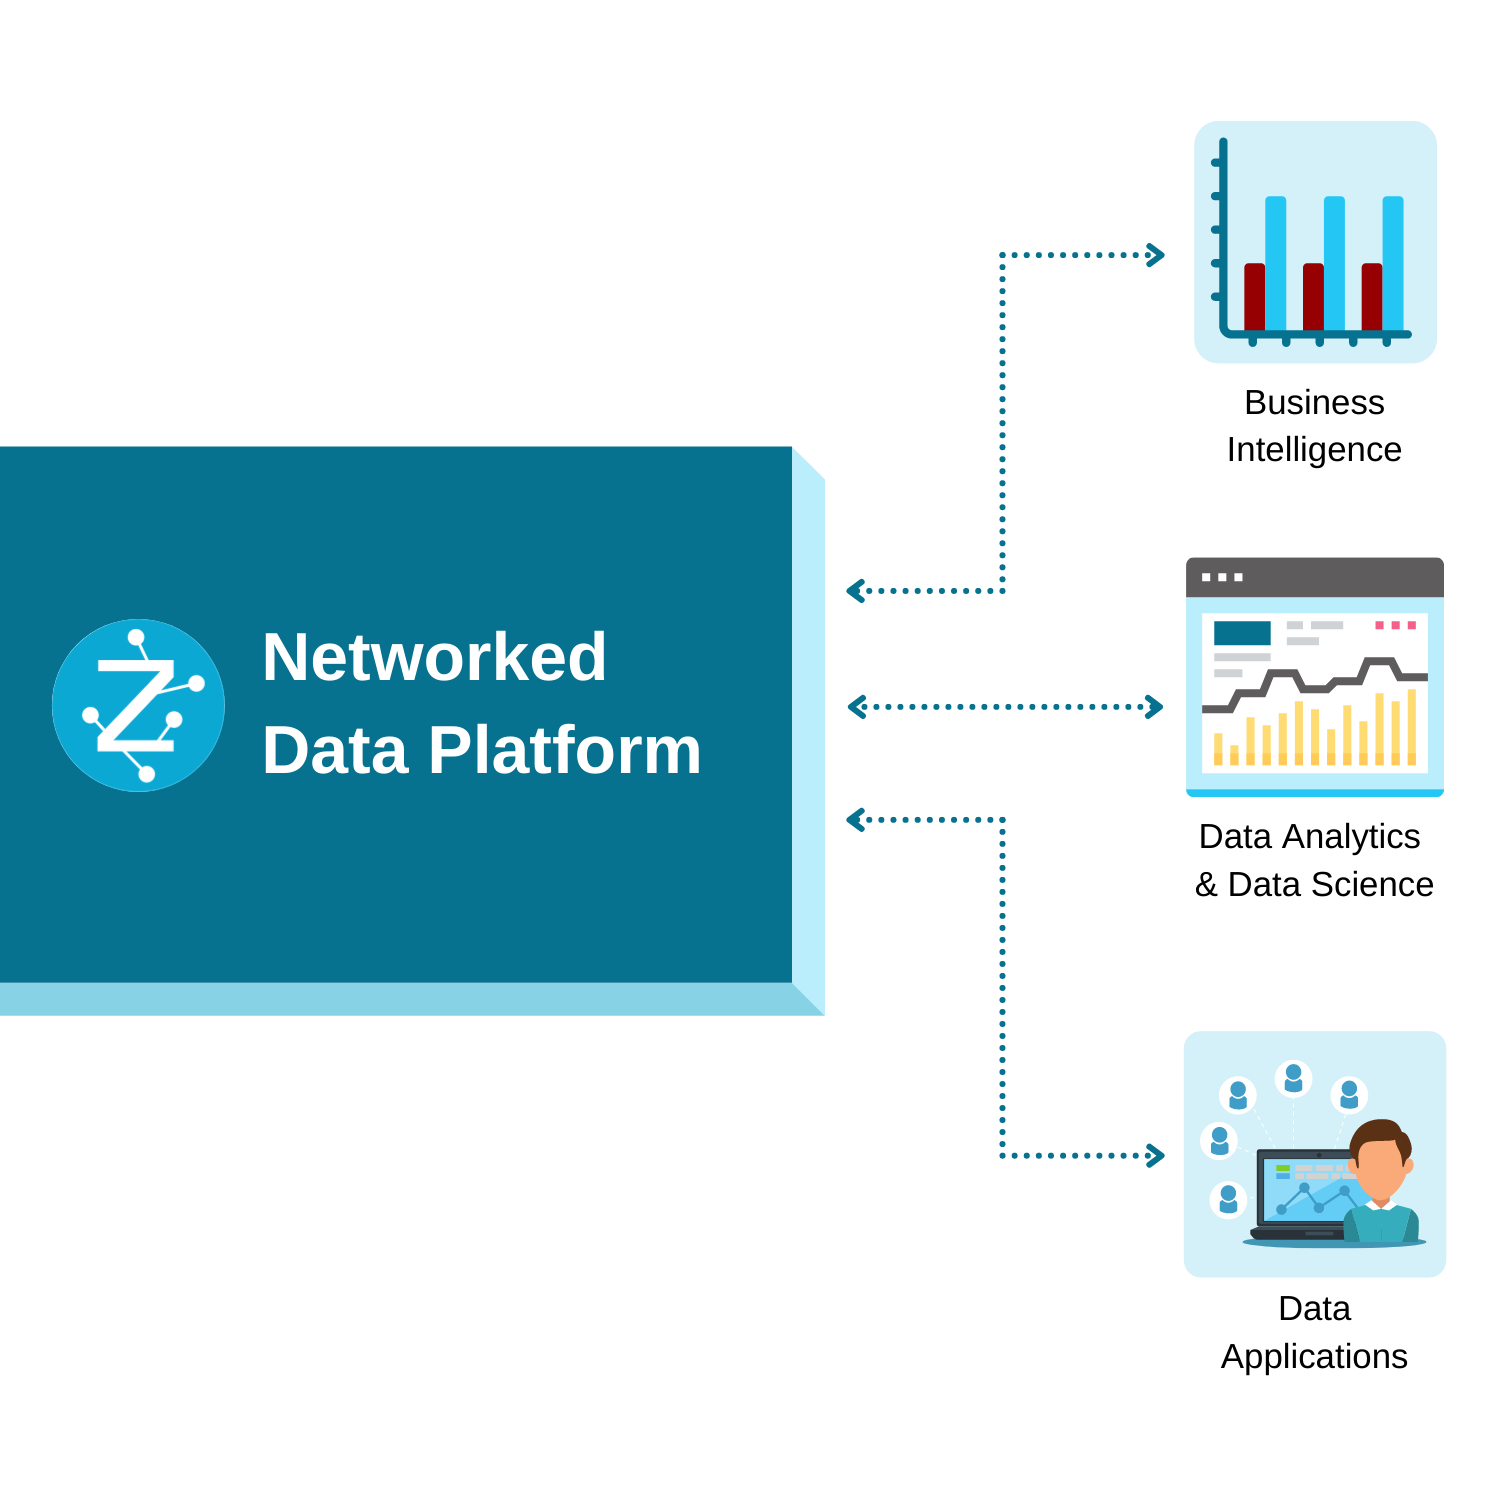 Consume data using your favourite analytics tools